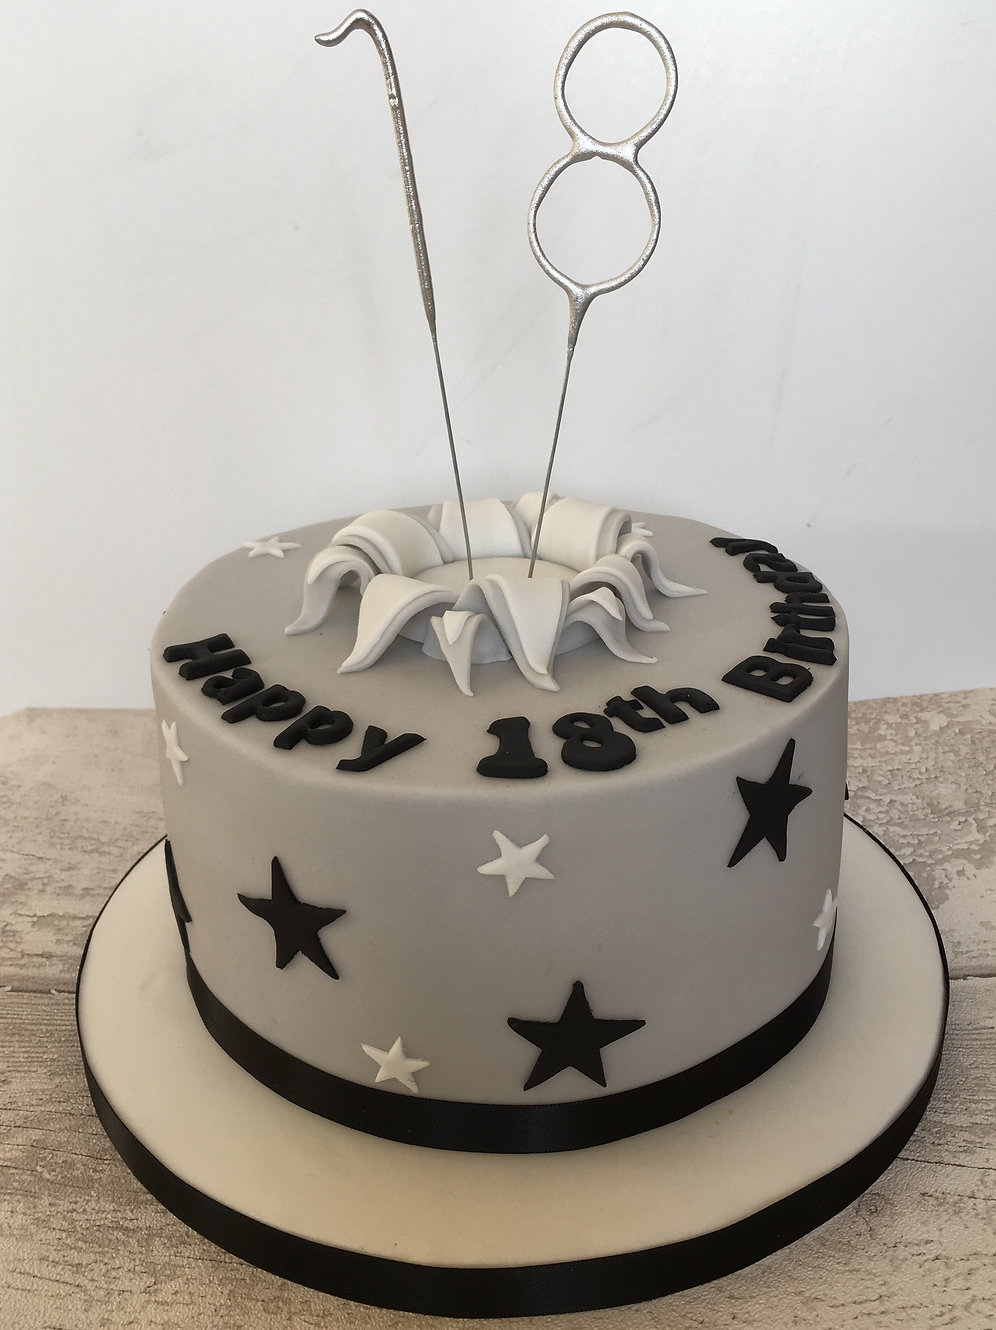 Funky Birthday Cake For Any Age With Candles Exploding Out Of The Middle